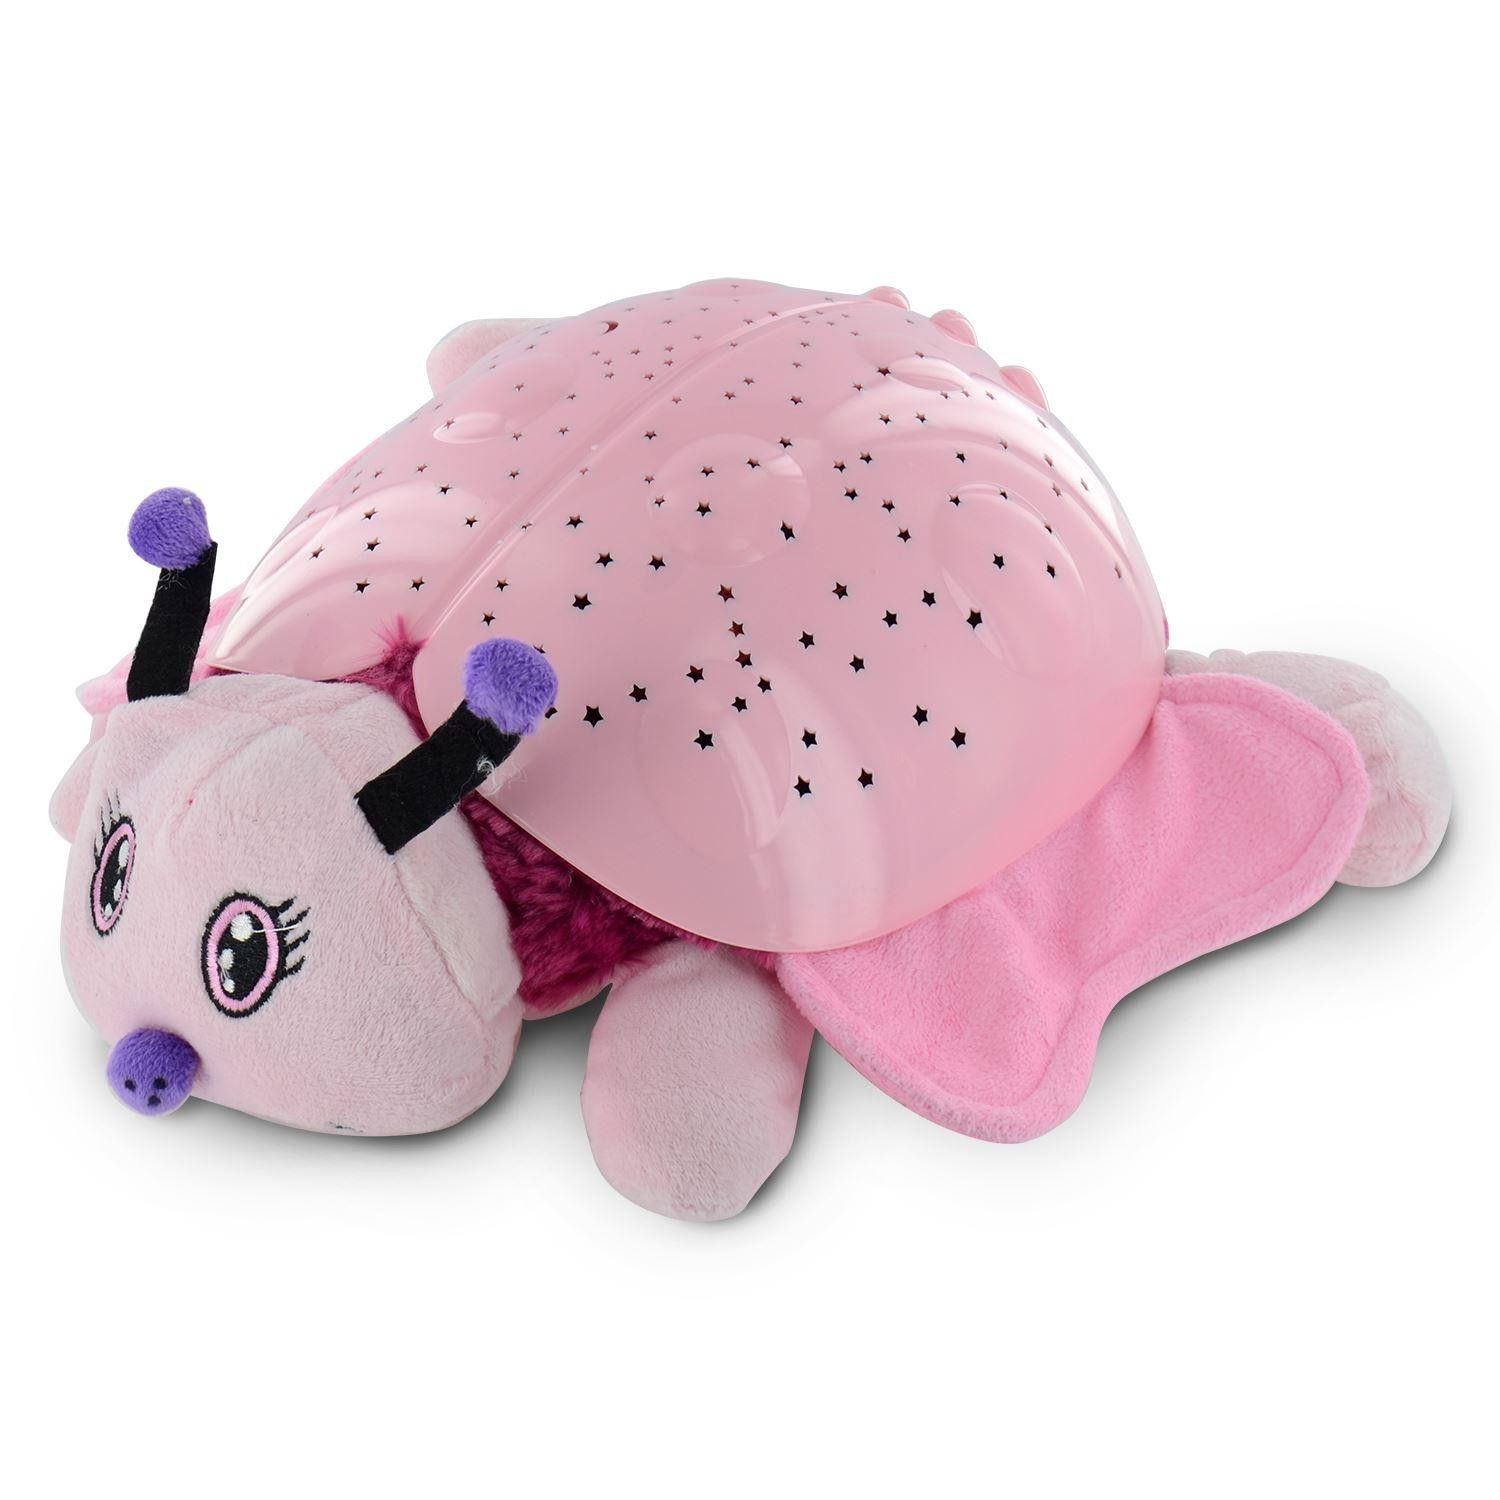 Butterfly Kid Pillow Pet Night Light Animal Cuddly Plush Toy Doll Christmas Gift eBay